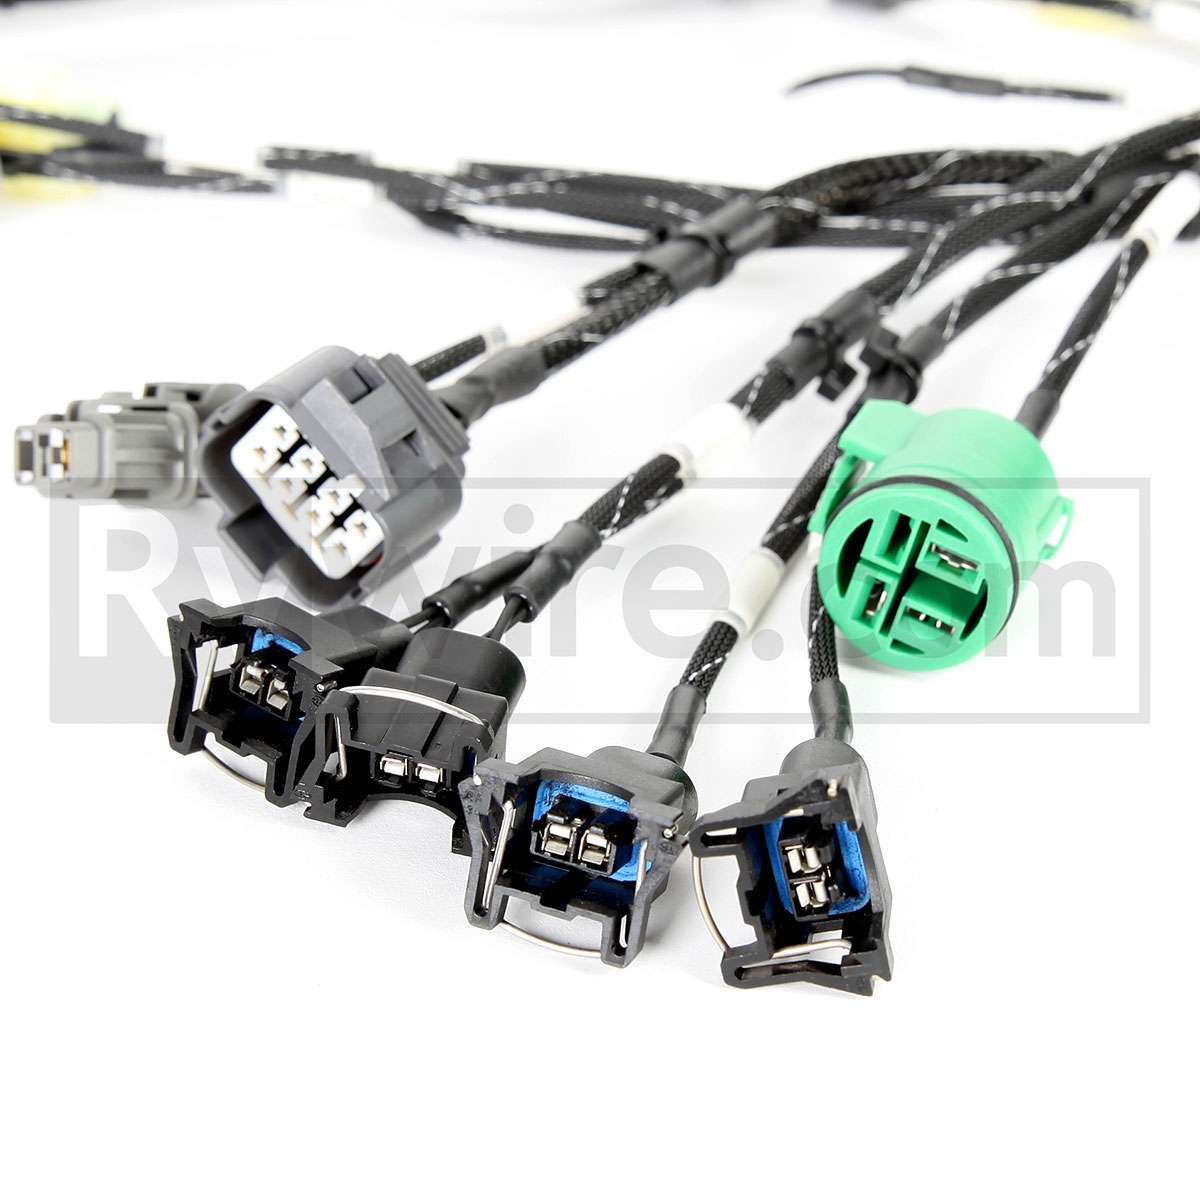 B1 Base 4?1403534211 rywire com budget d & b series tucked engine harness 99-00 civic si wiring harness at gsmx.co